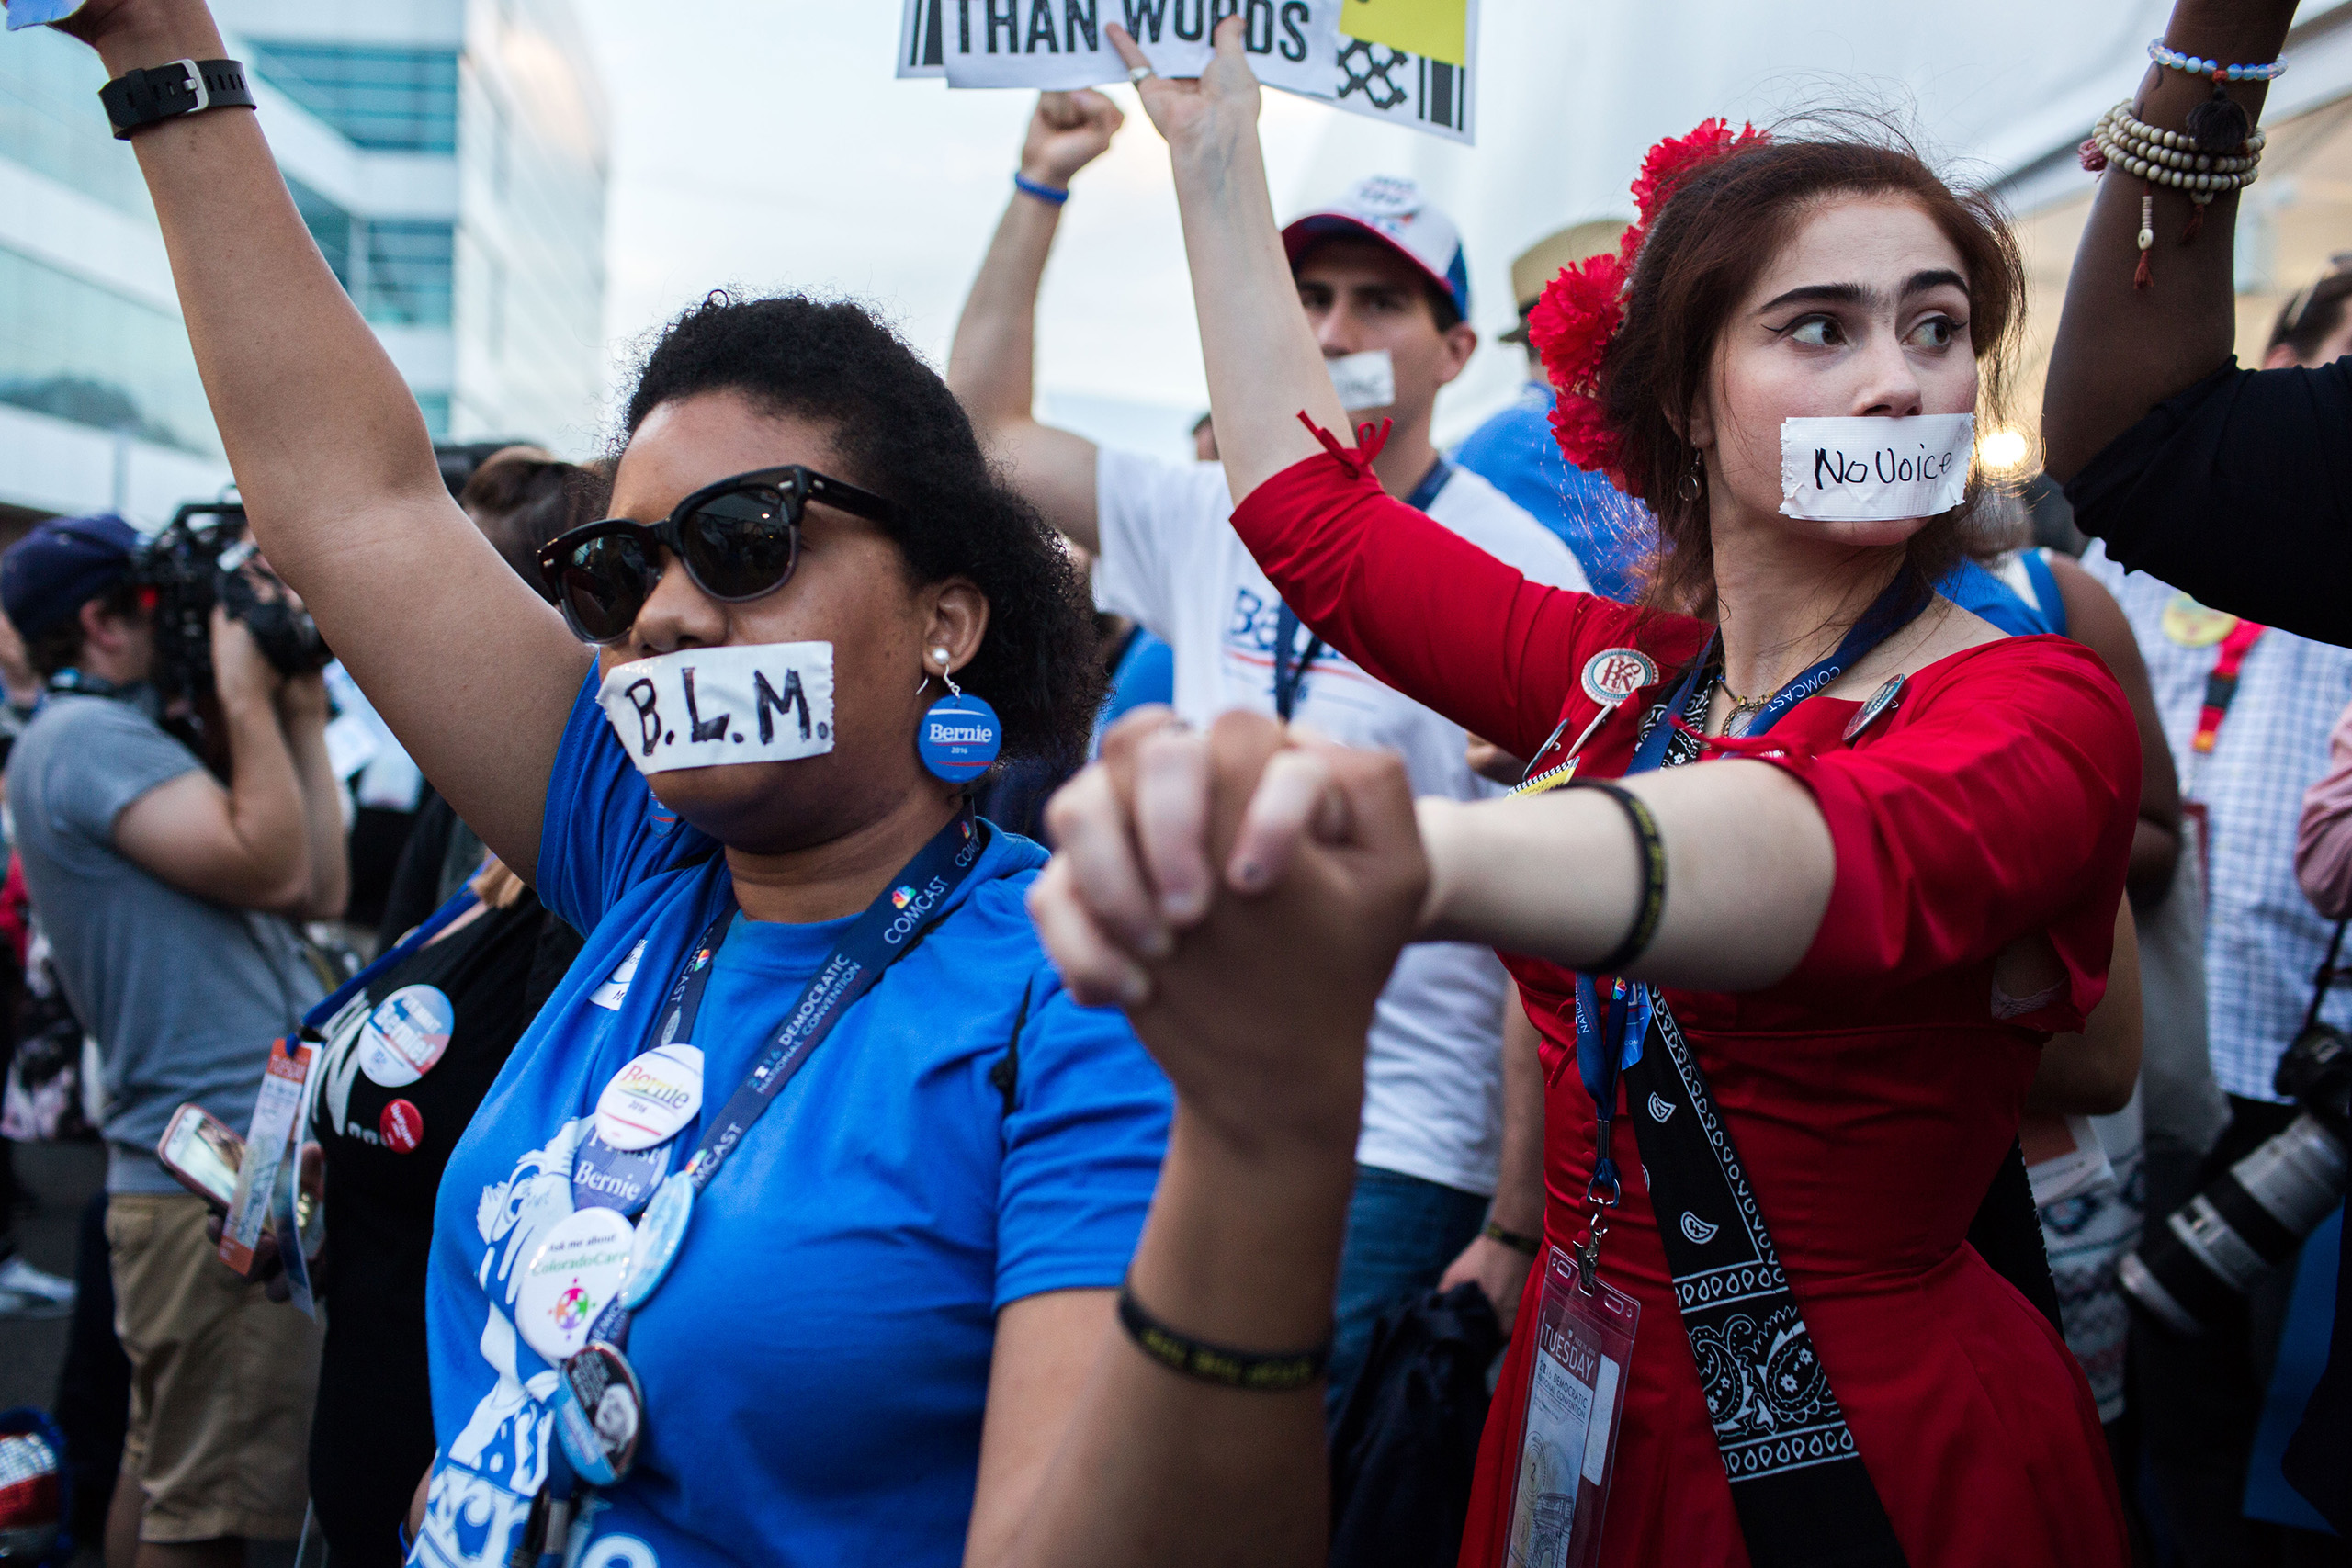 Protesters and pro Bernie Sanders delegates held a demonstration at the media tent during the Democratic National Convention at the Wells Fargo Center on July 26, 2016 in Philadelphia.